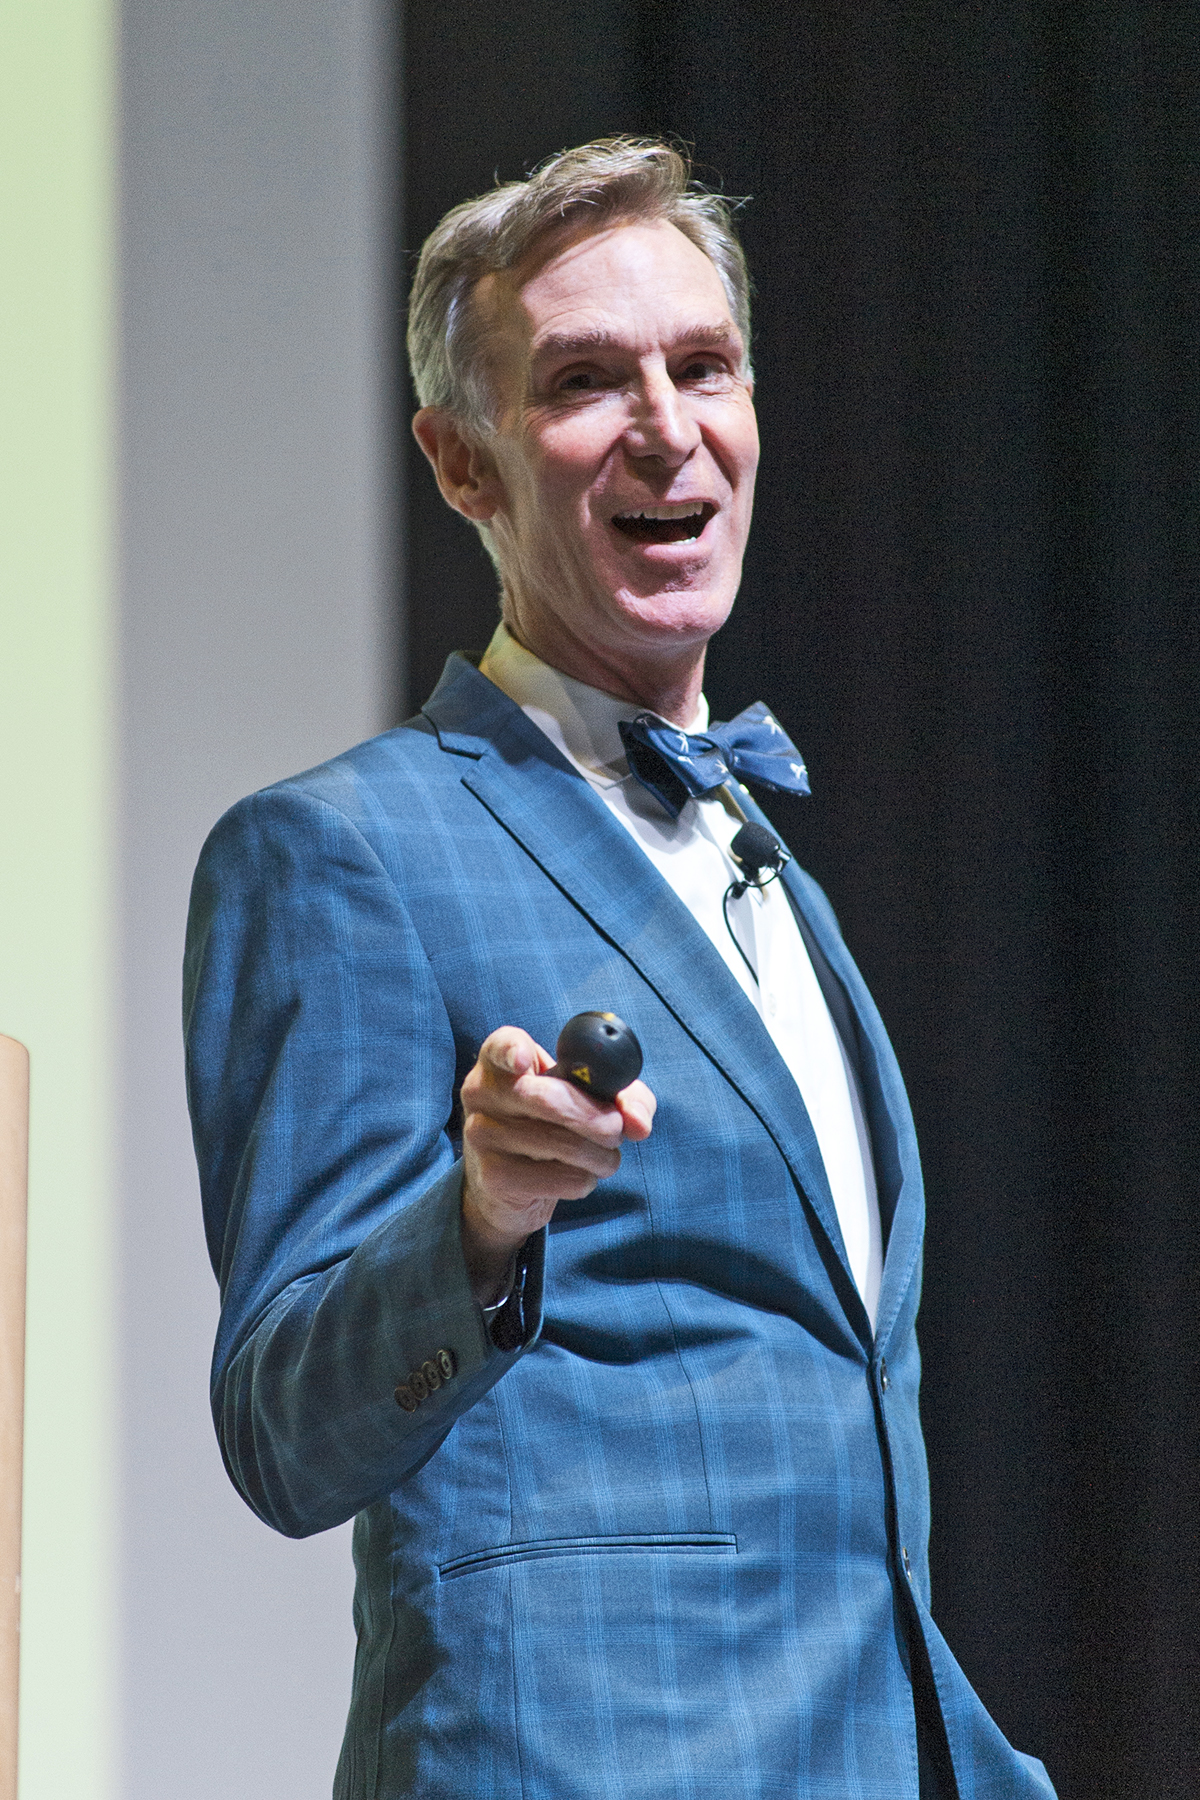 Bill Nye Tells Uic Students I Want You To Change The